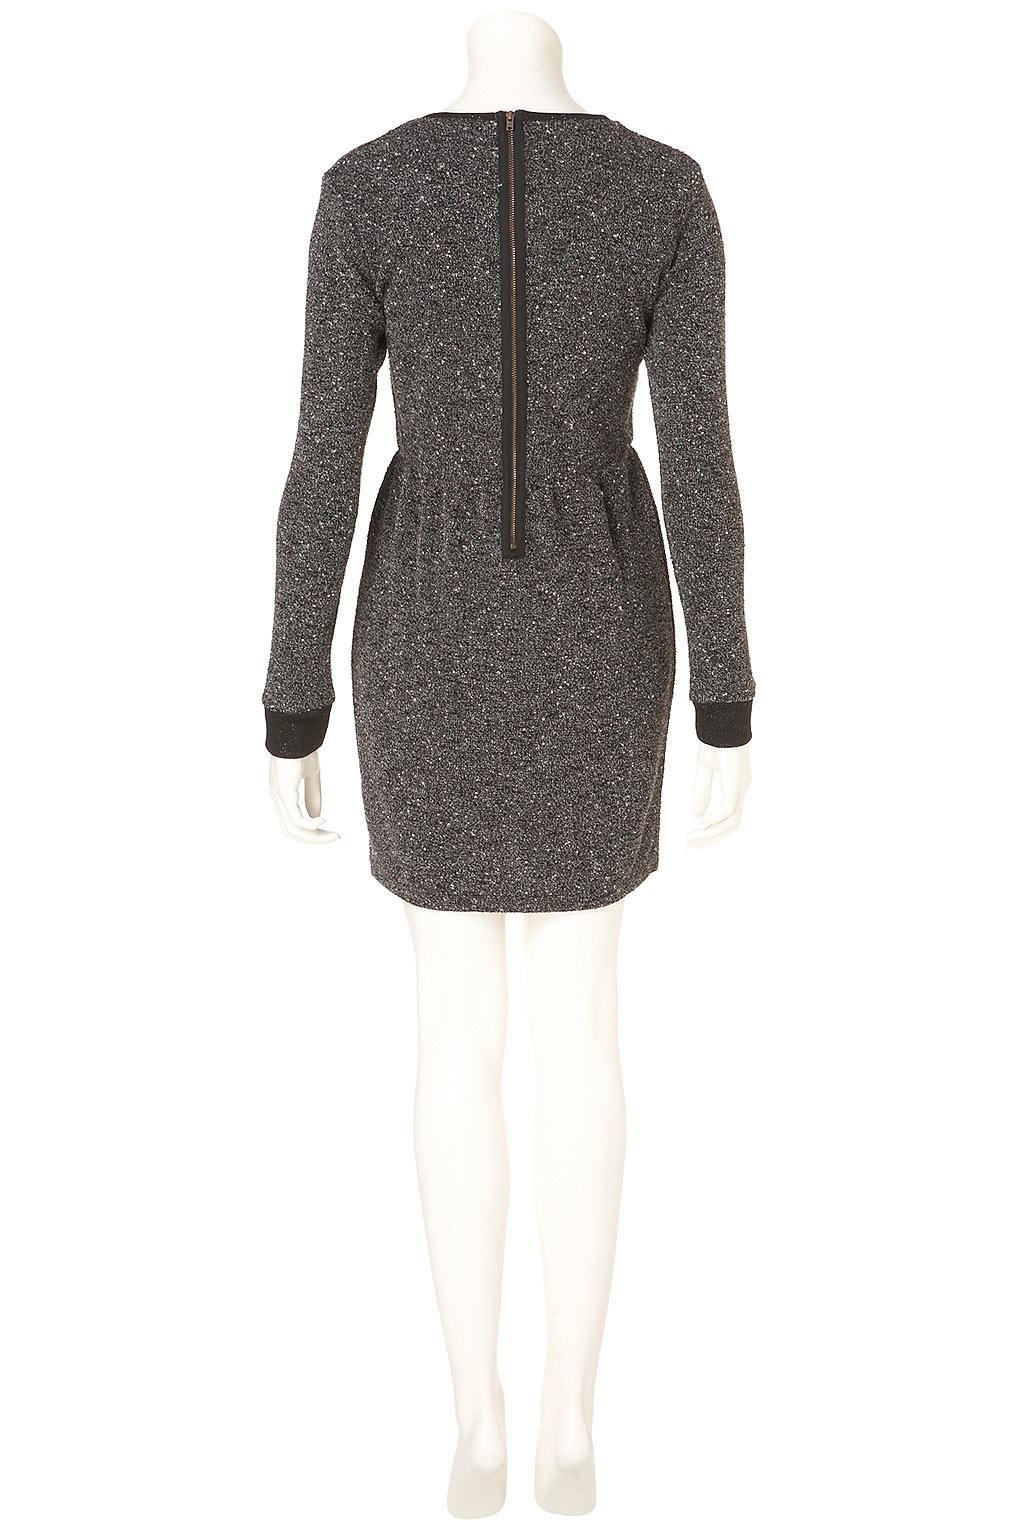 55f598b2292 Lyst - TOPSHOP Boucle Sweater Dress in Gray